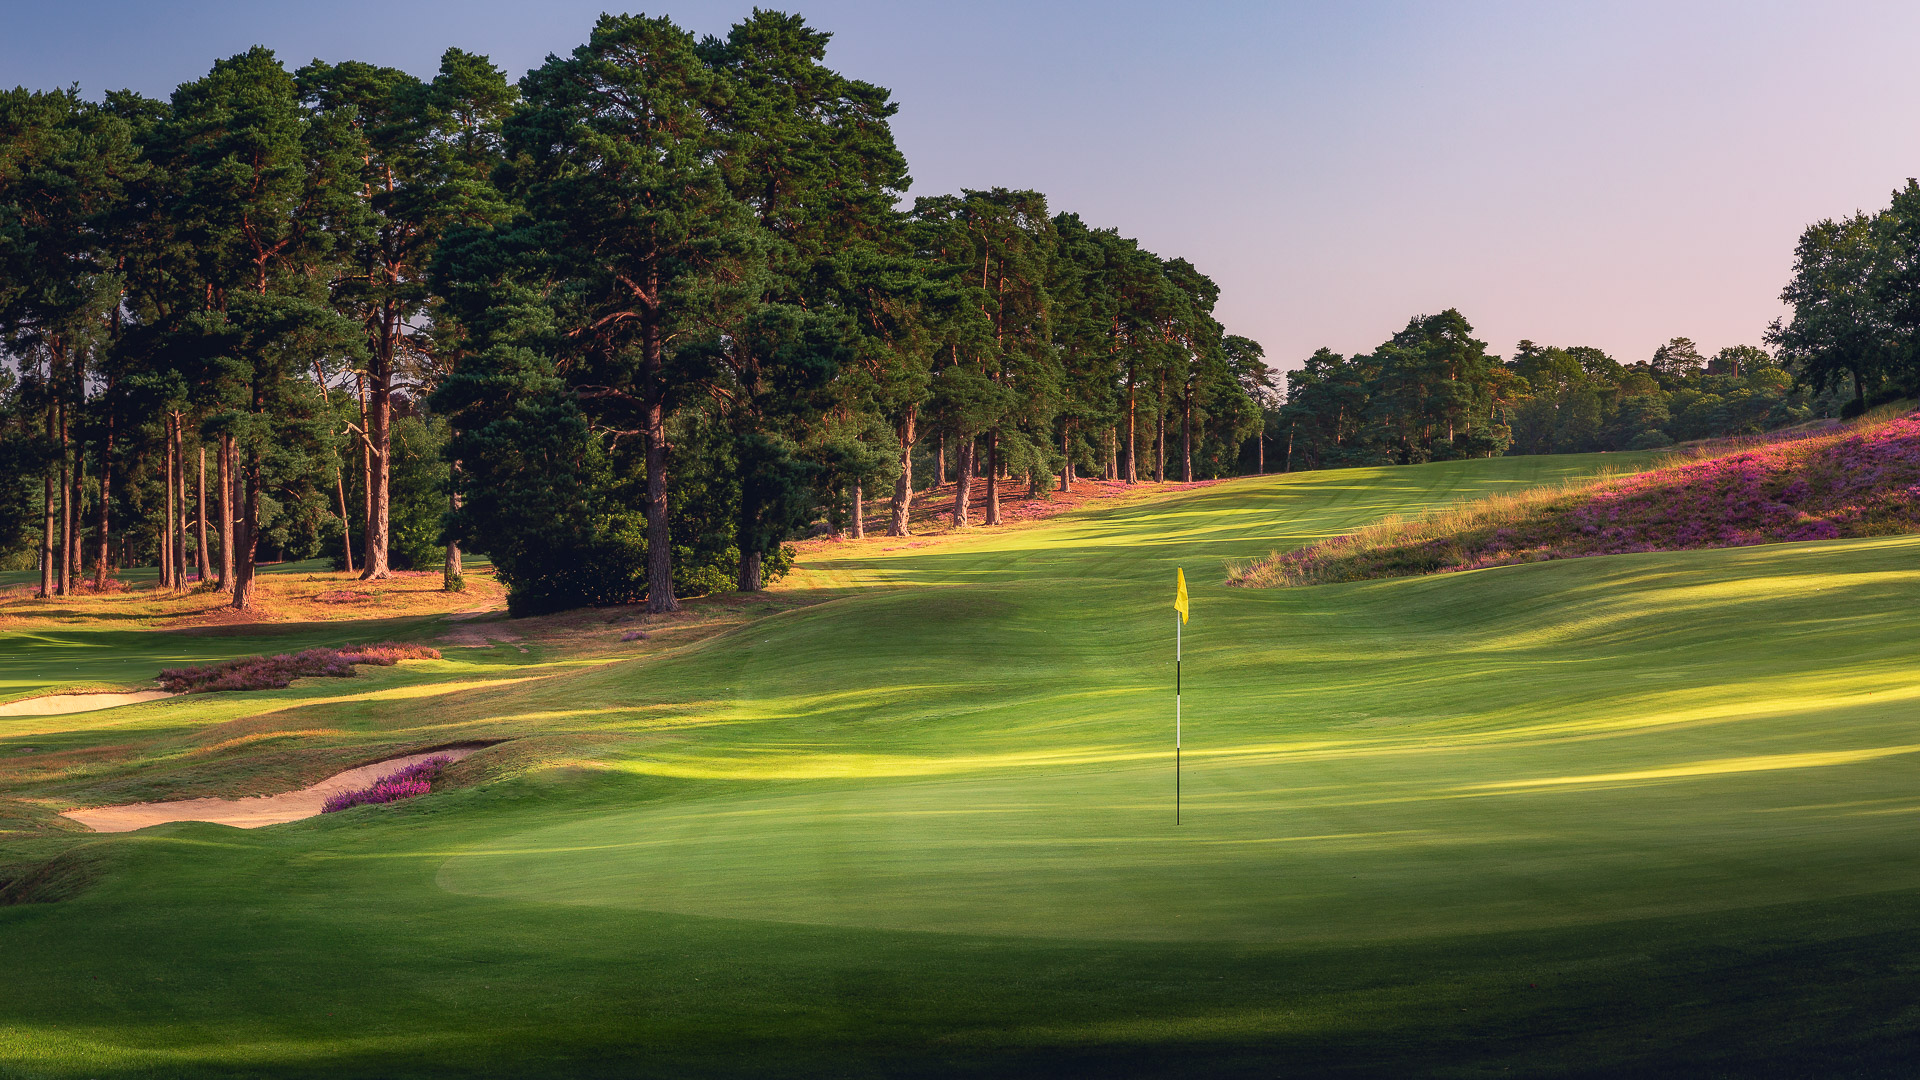 10th-Hole-St-Georges-Hill-Golf-Club-2215-Edit